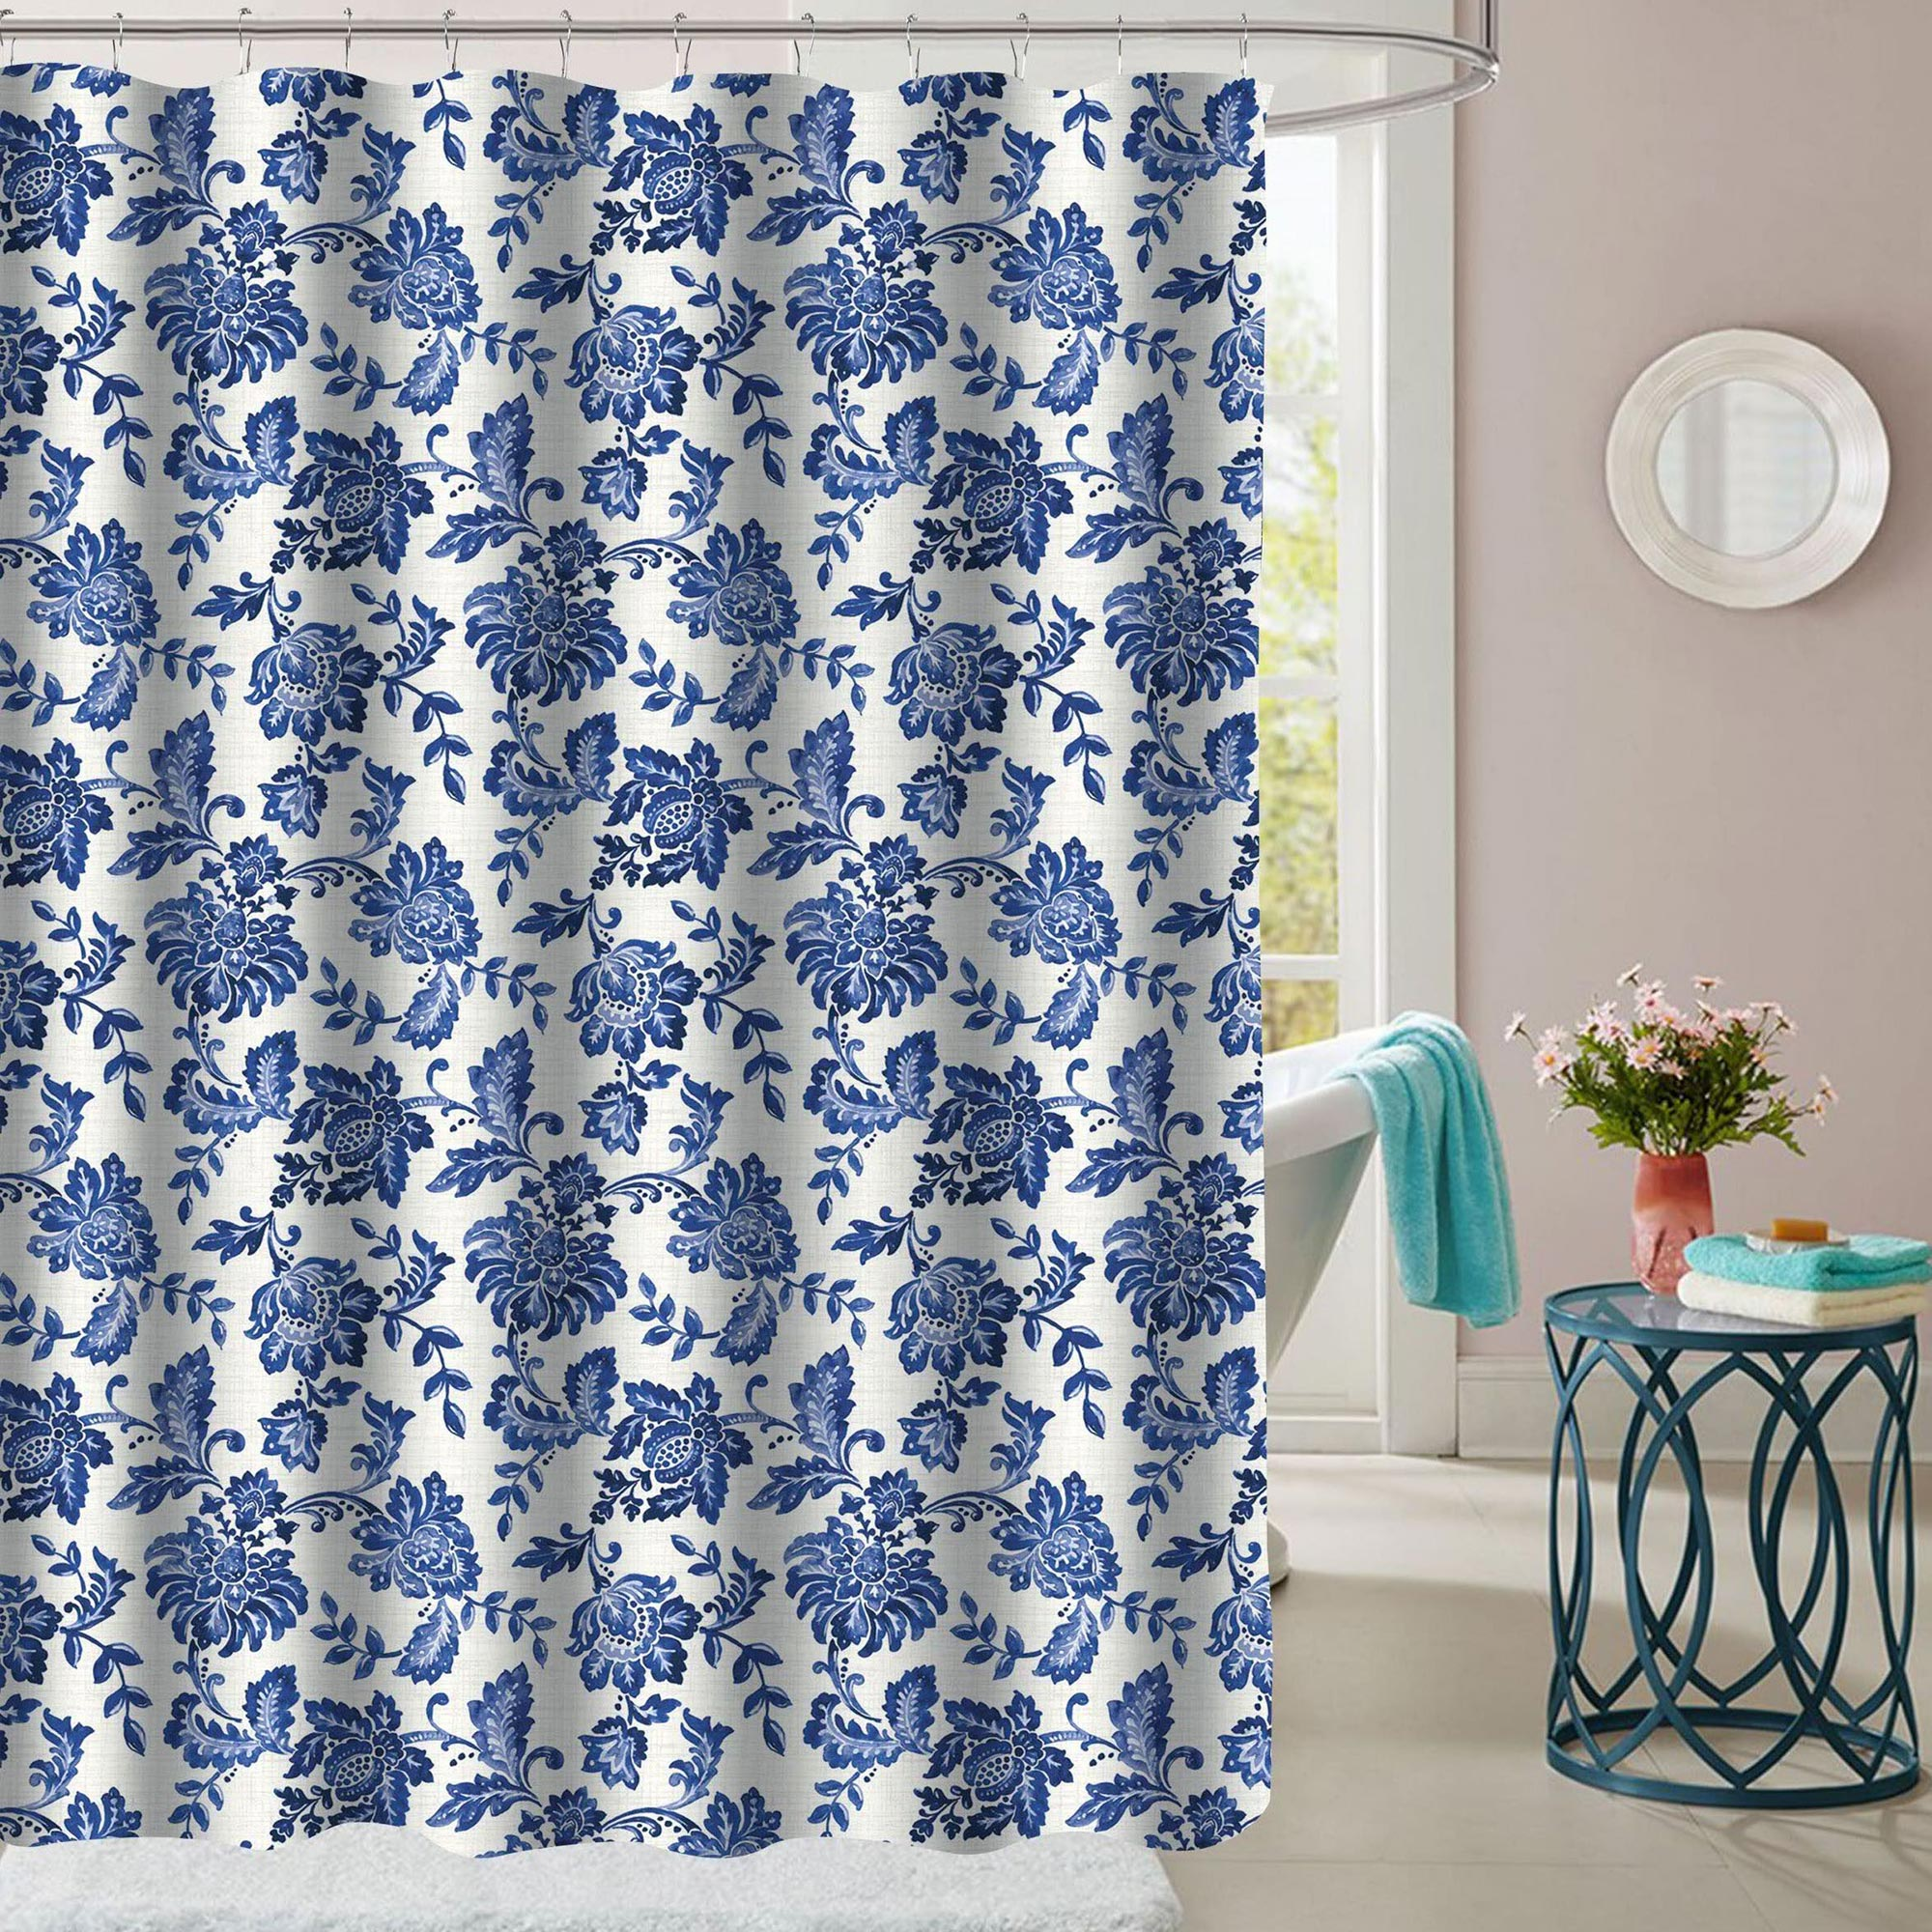 Details About Tuscany Navy Floral Pattern Fabric Bathroom Shower Curtain 70 X72